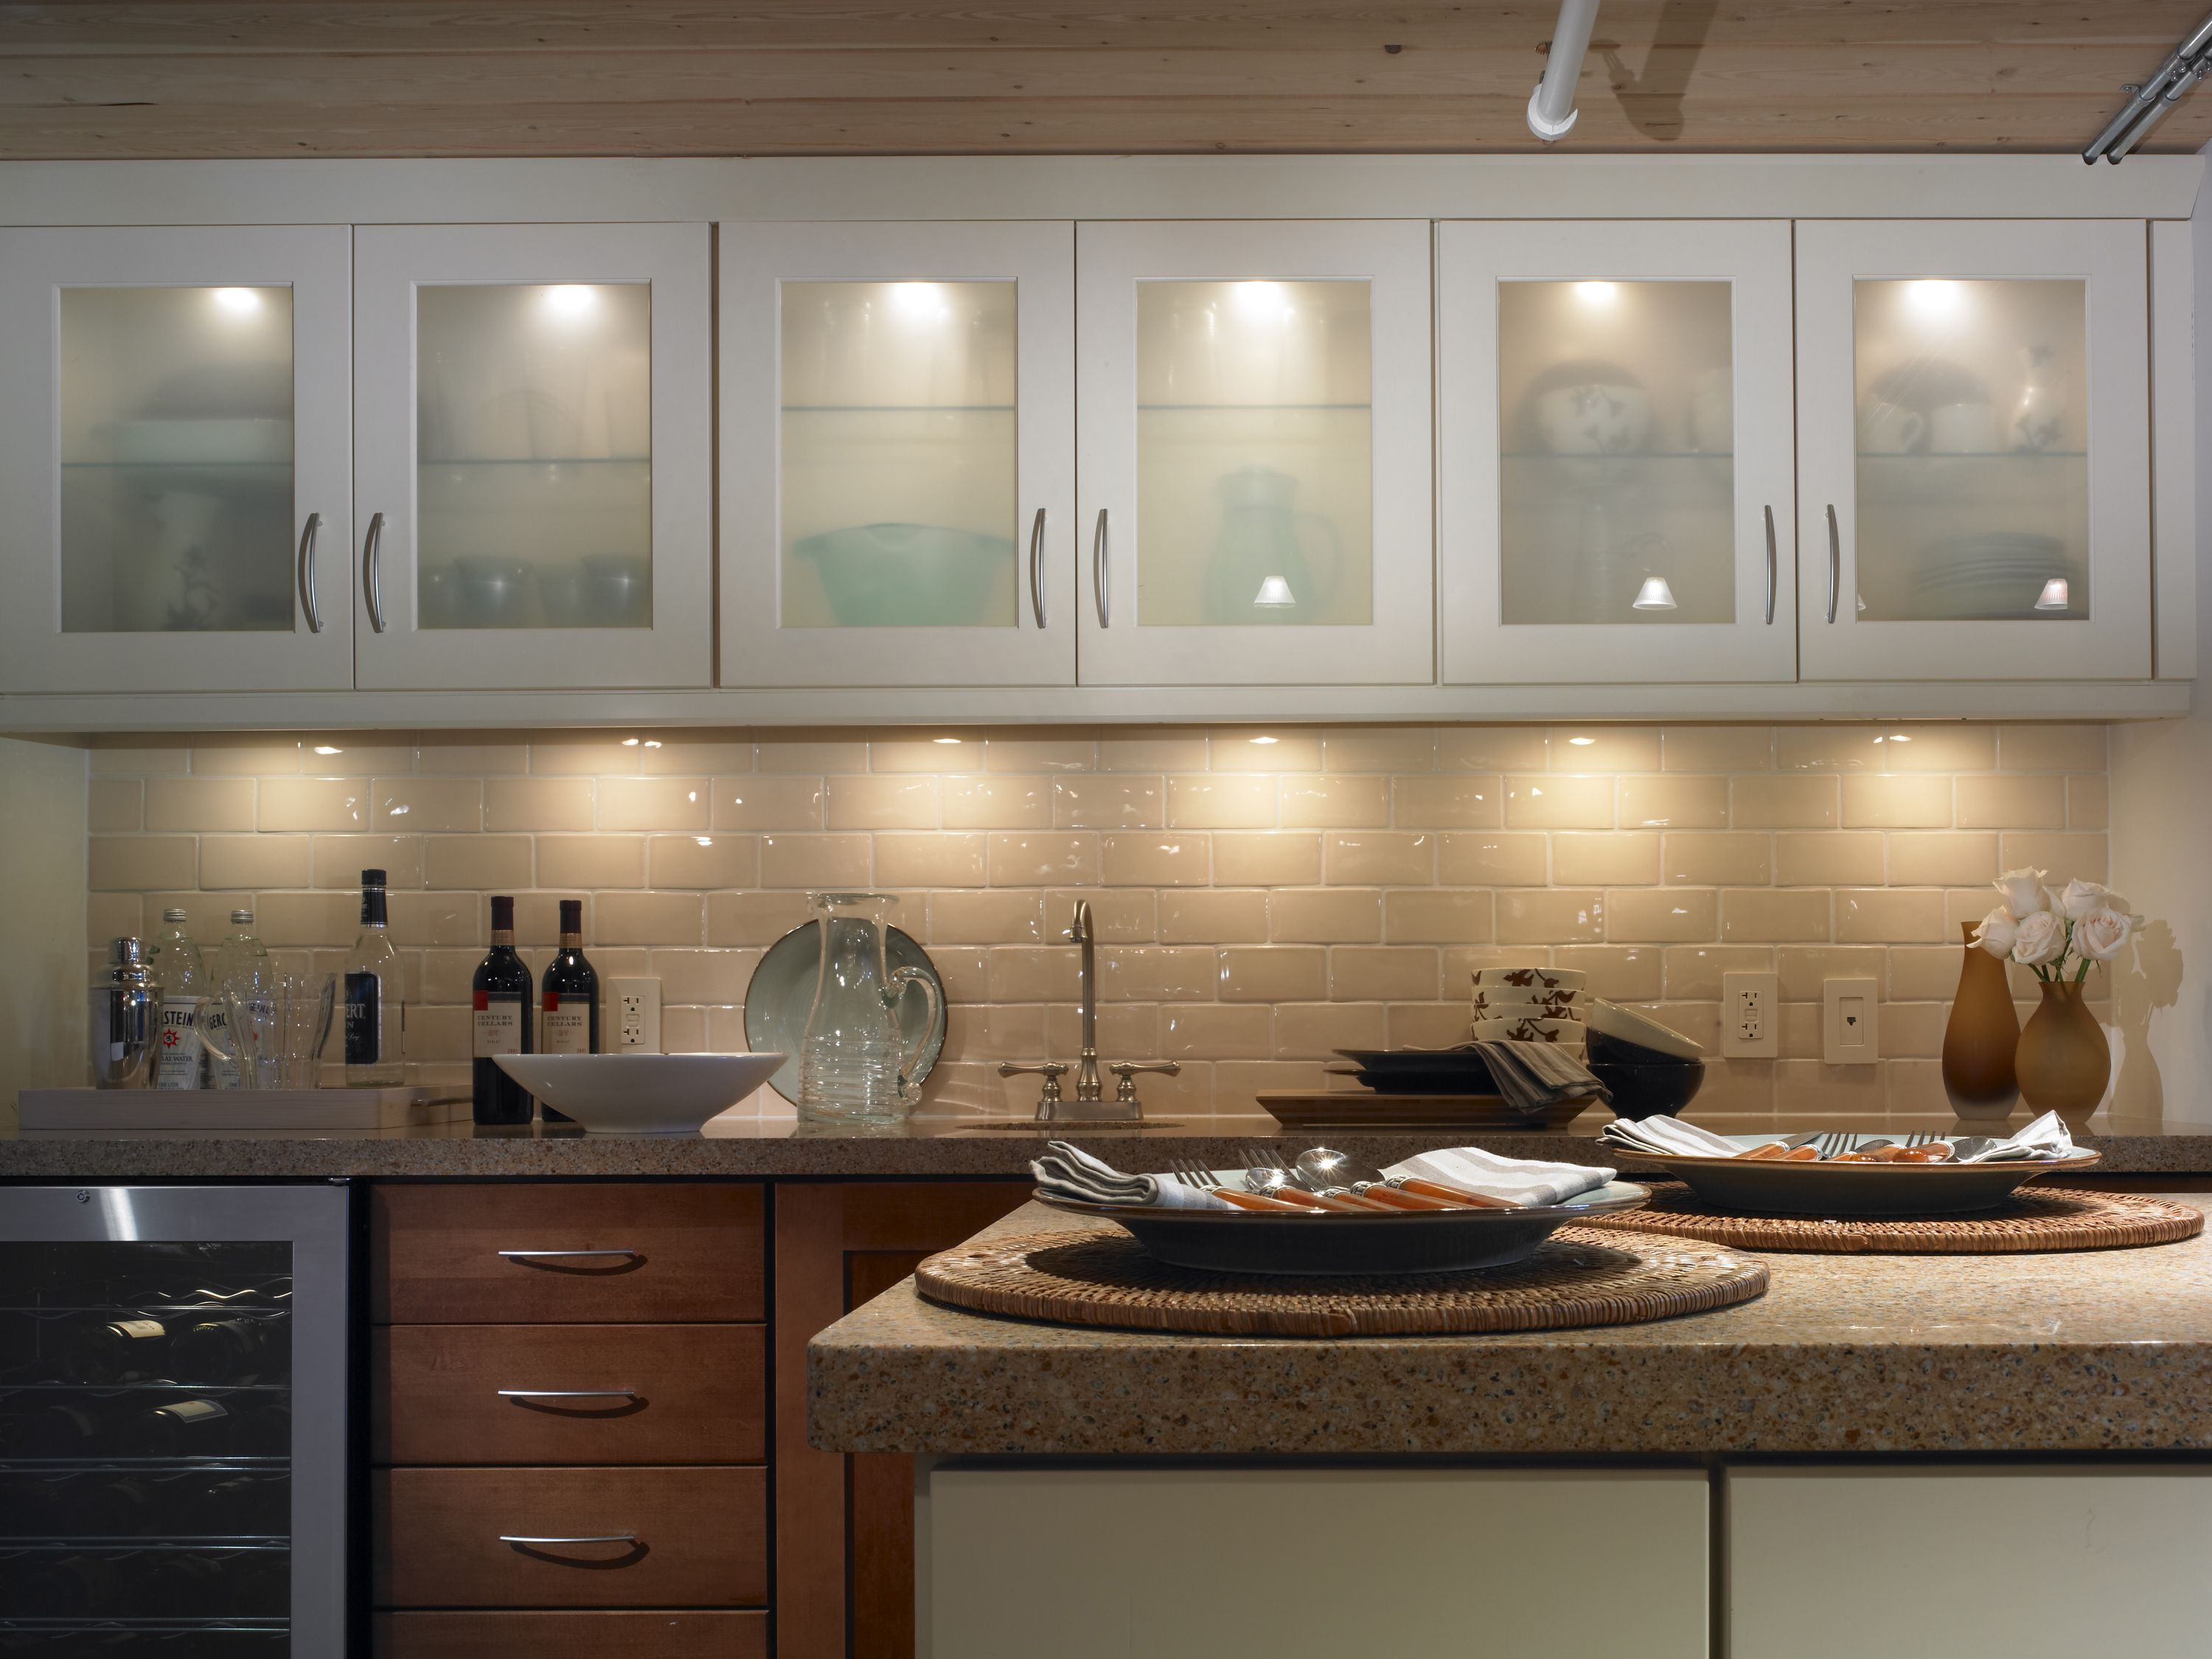 Automated Lightingcontrol Like This Can Improve Cooking In Any